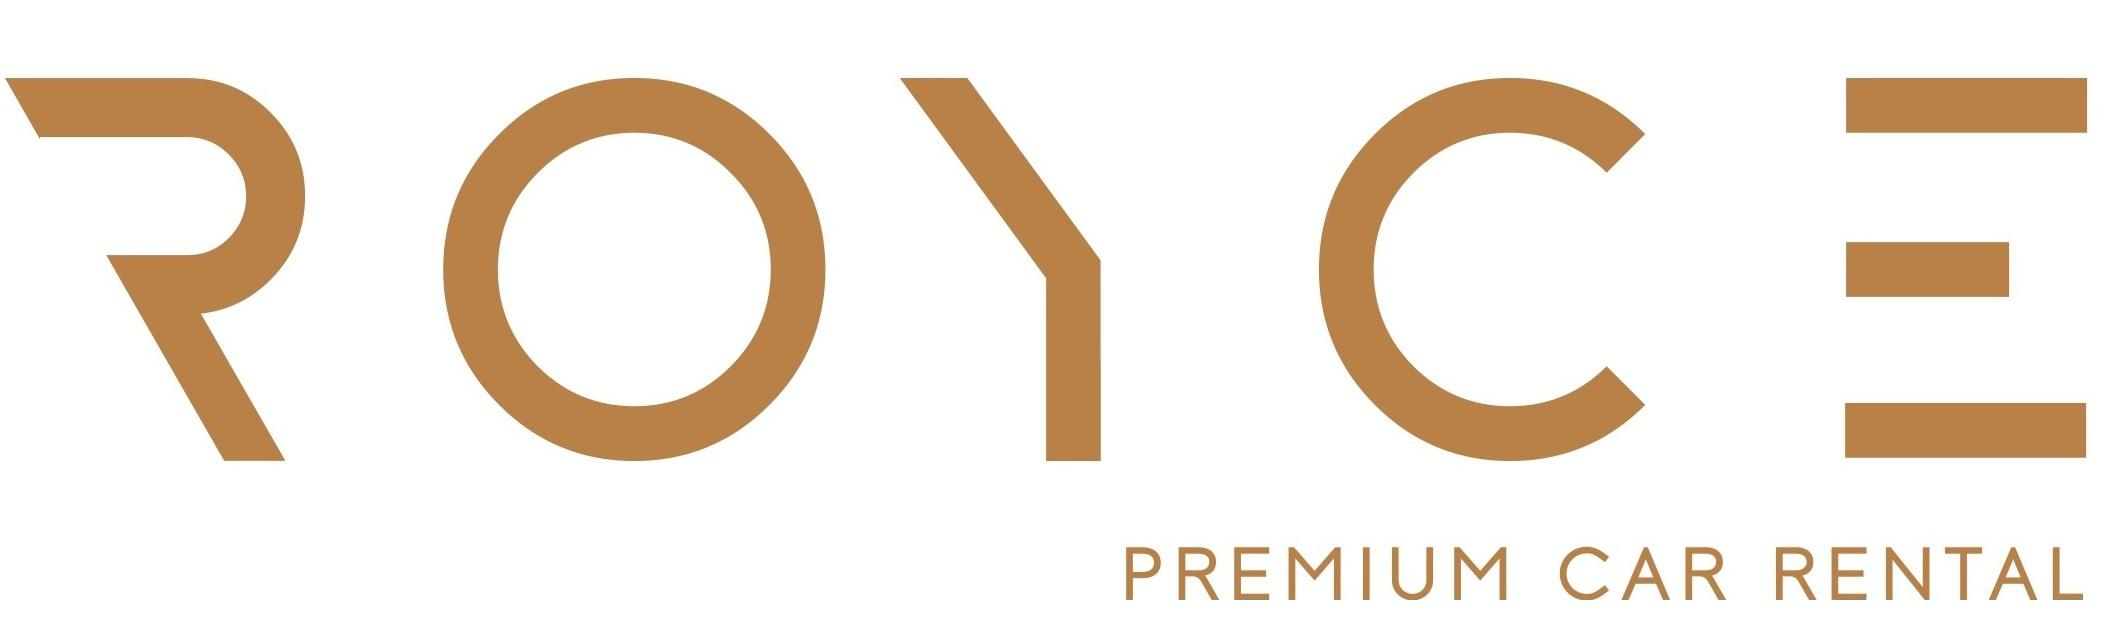 ROYCE PREMIUM CAR RENTAL Logo